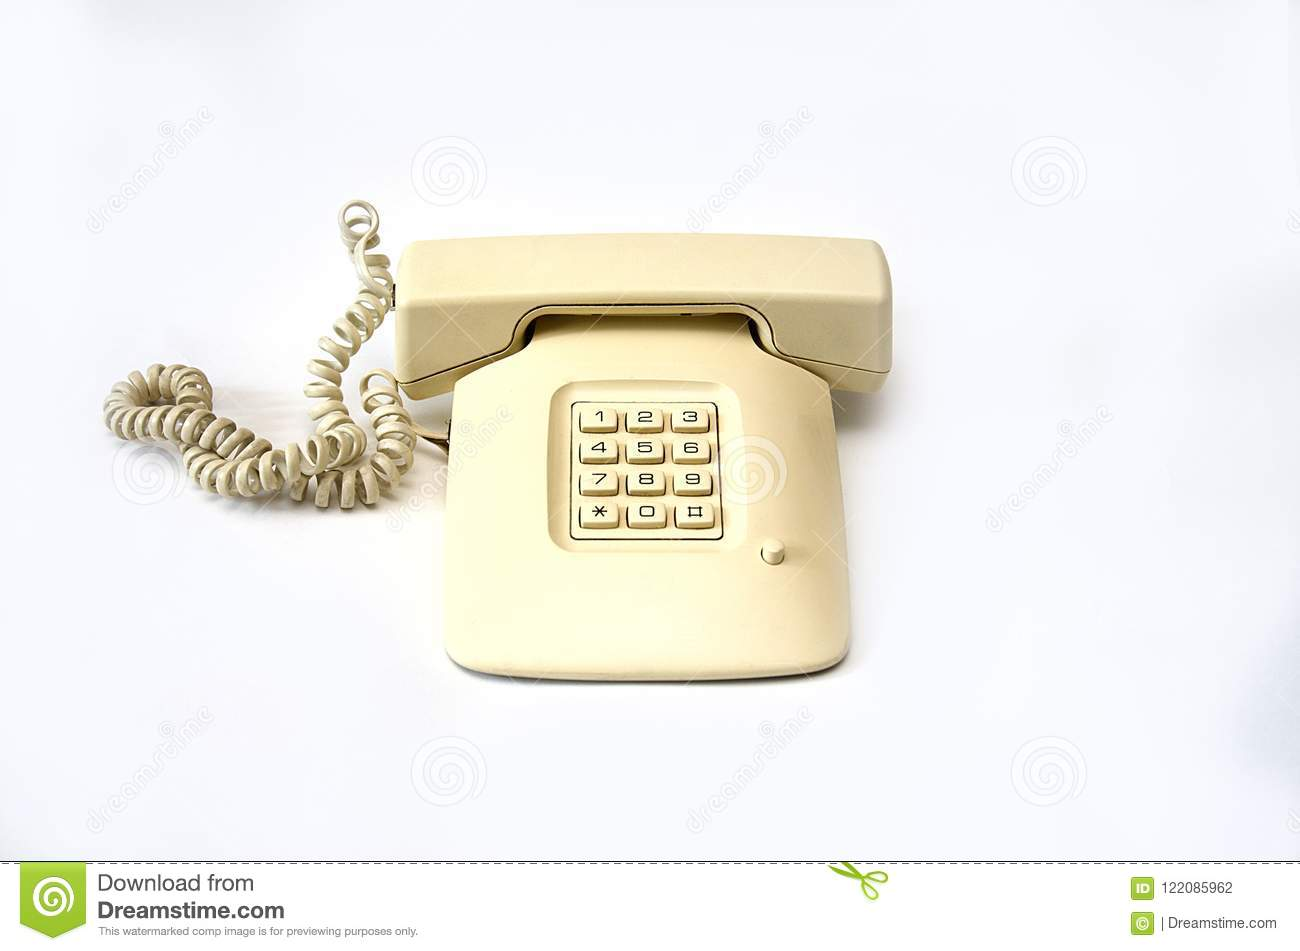 isolate beige old telephone with wire tube lies on white background Old Electric Wiring beige old telephone with a row lying off the removed wire tube isolate on a white background